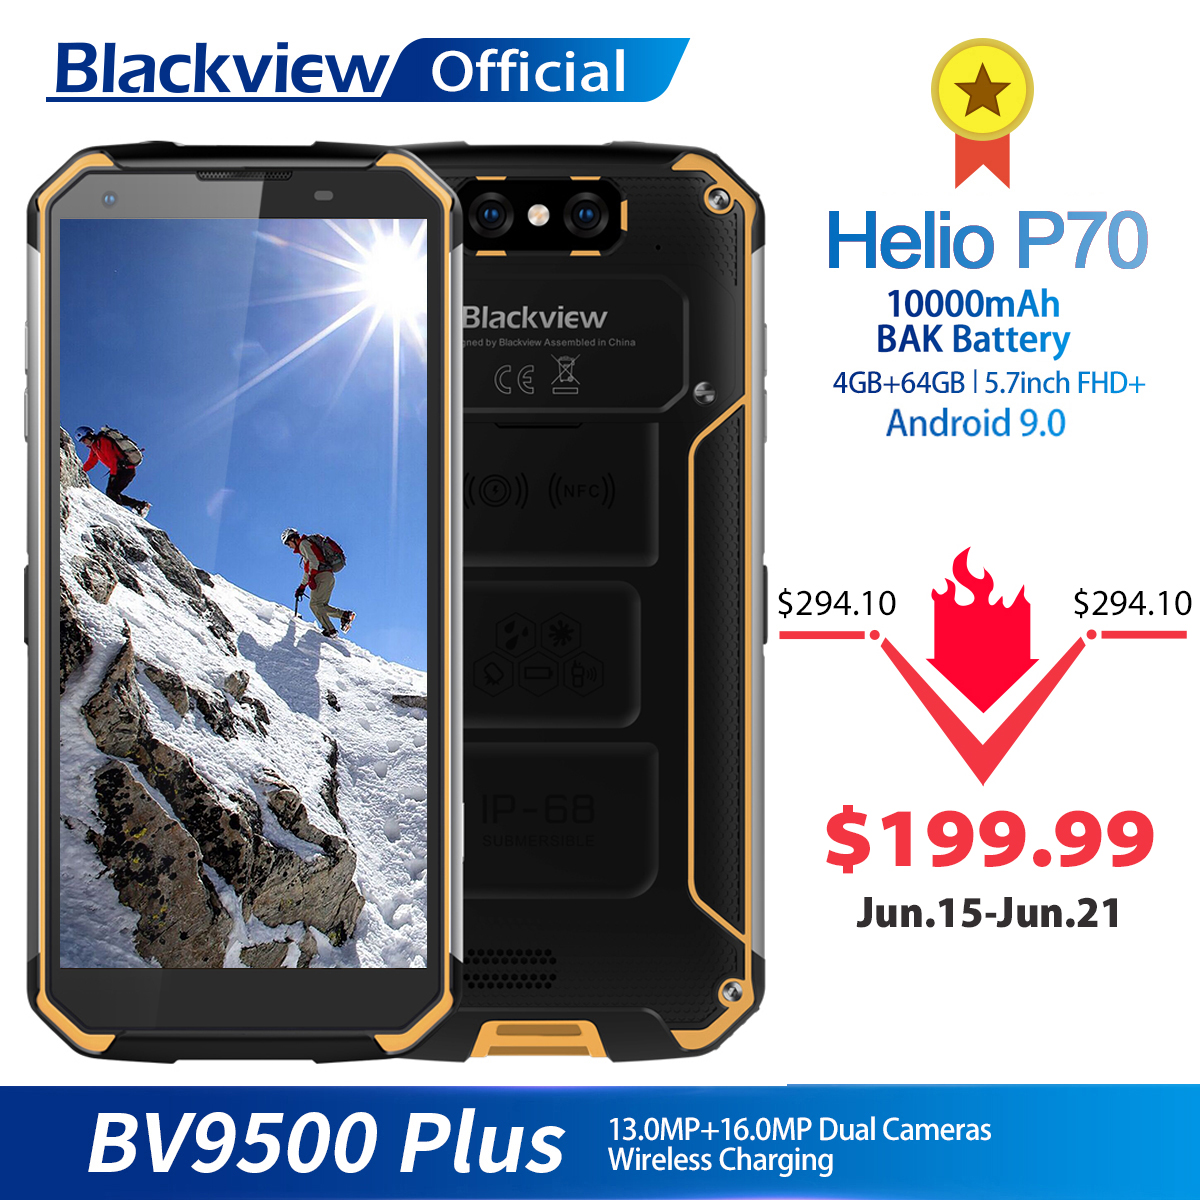 Blackview BV9500 Plus Helio P70 Octa Core Smartphone 10000mAh IP68 Waterproof 5.7inch FHD 4GB + 64GB Android 9.0 Mobile phone|Cellphones|   - AliExpress